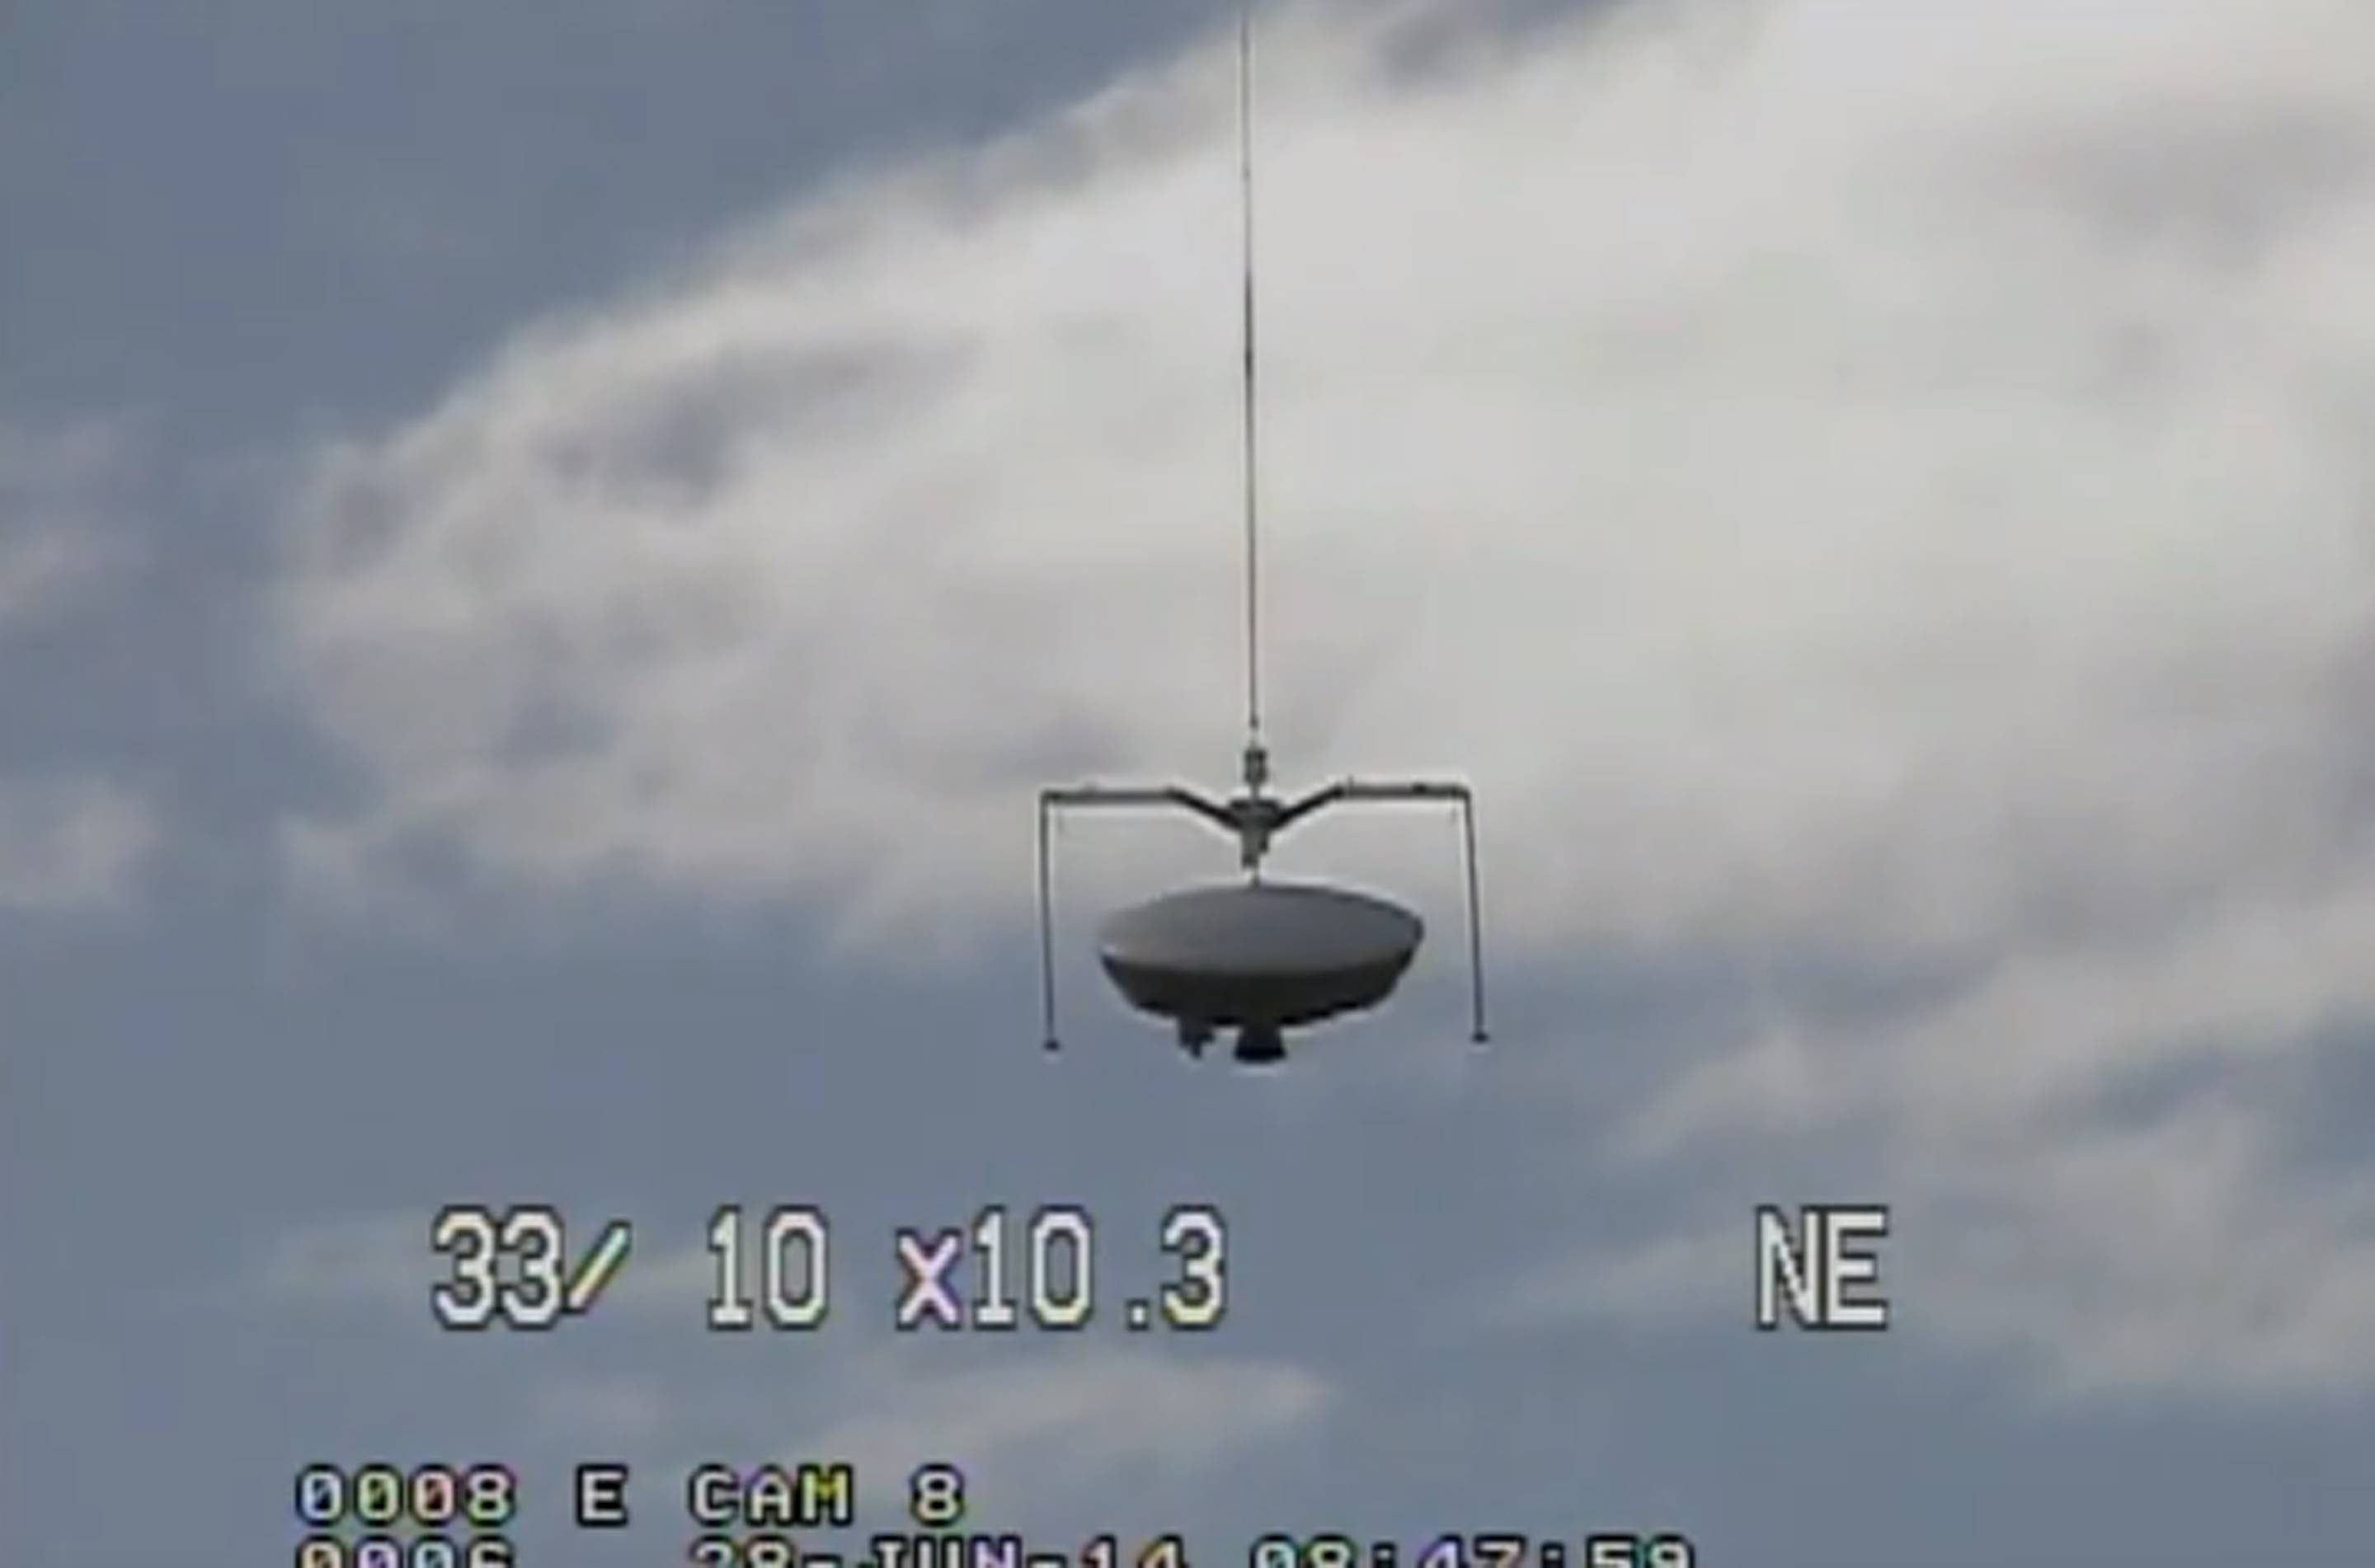 The launch Saturday of the high-altitude balloon carrying this saucer-shaped vehicle for NASA, in Kauai, Hawaii.